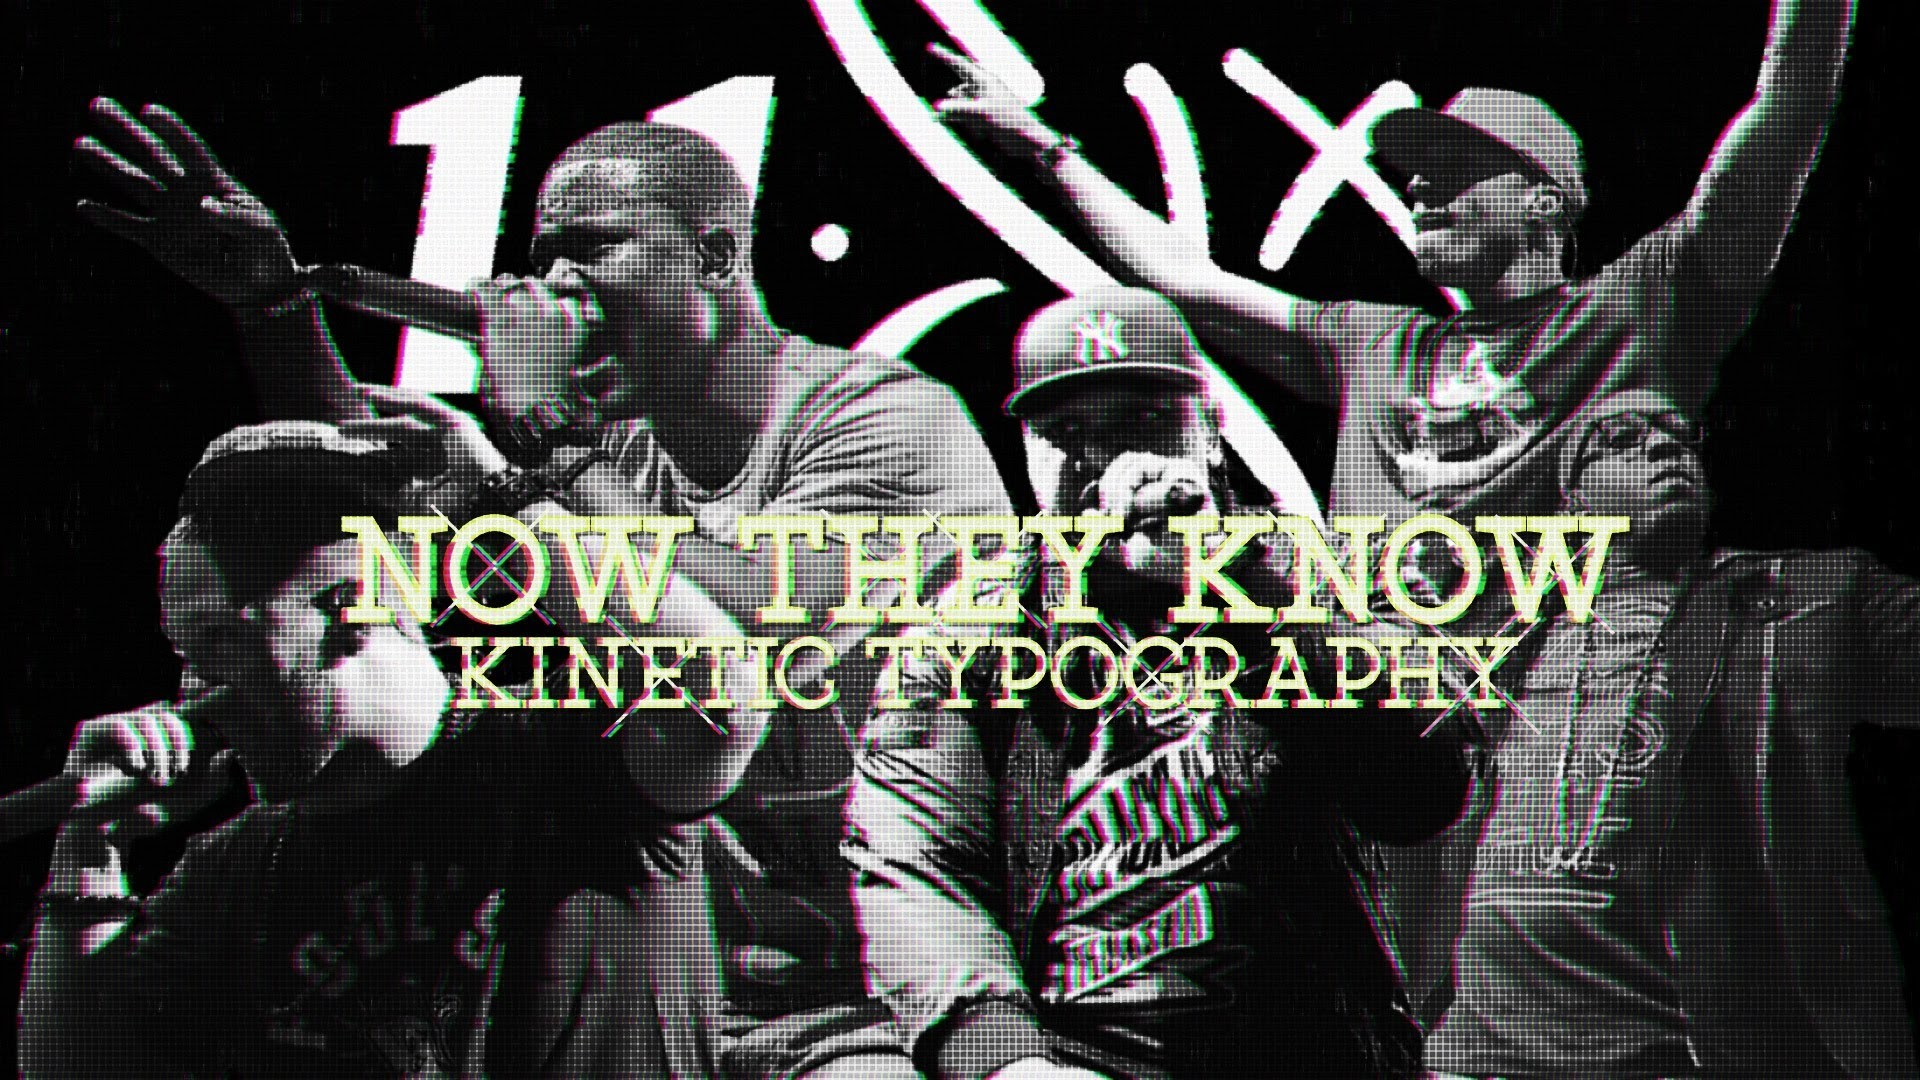 116 Unashamed Wallpaper 116-now-they-know-kinetic- .